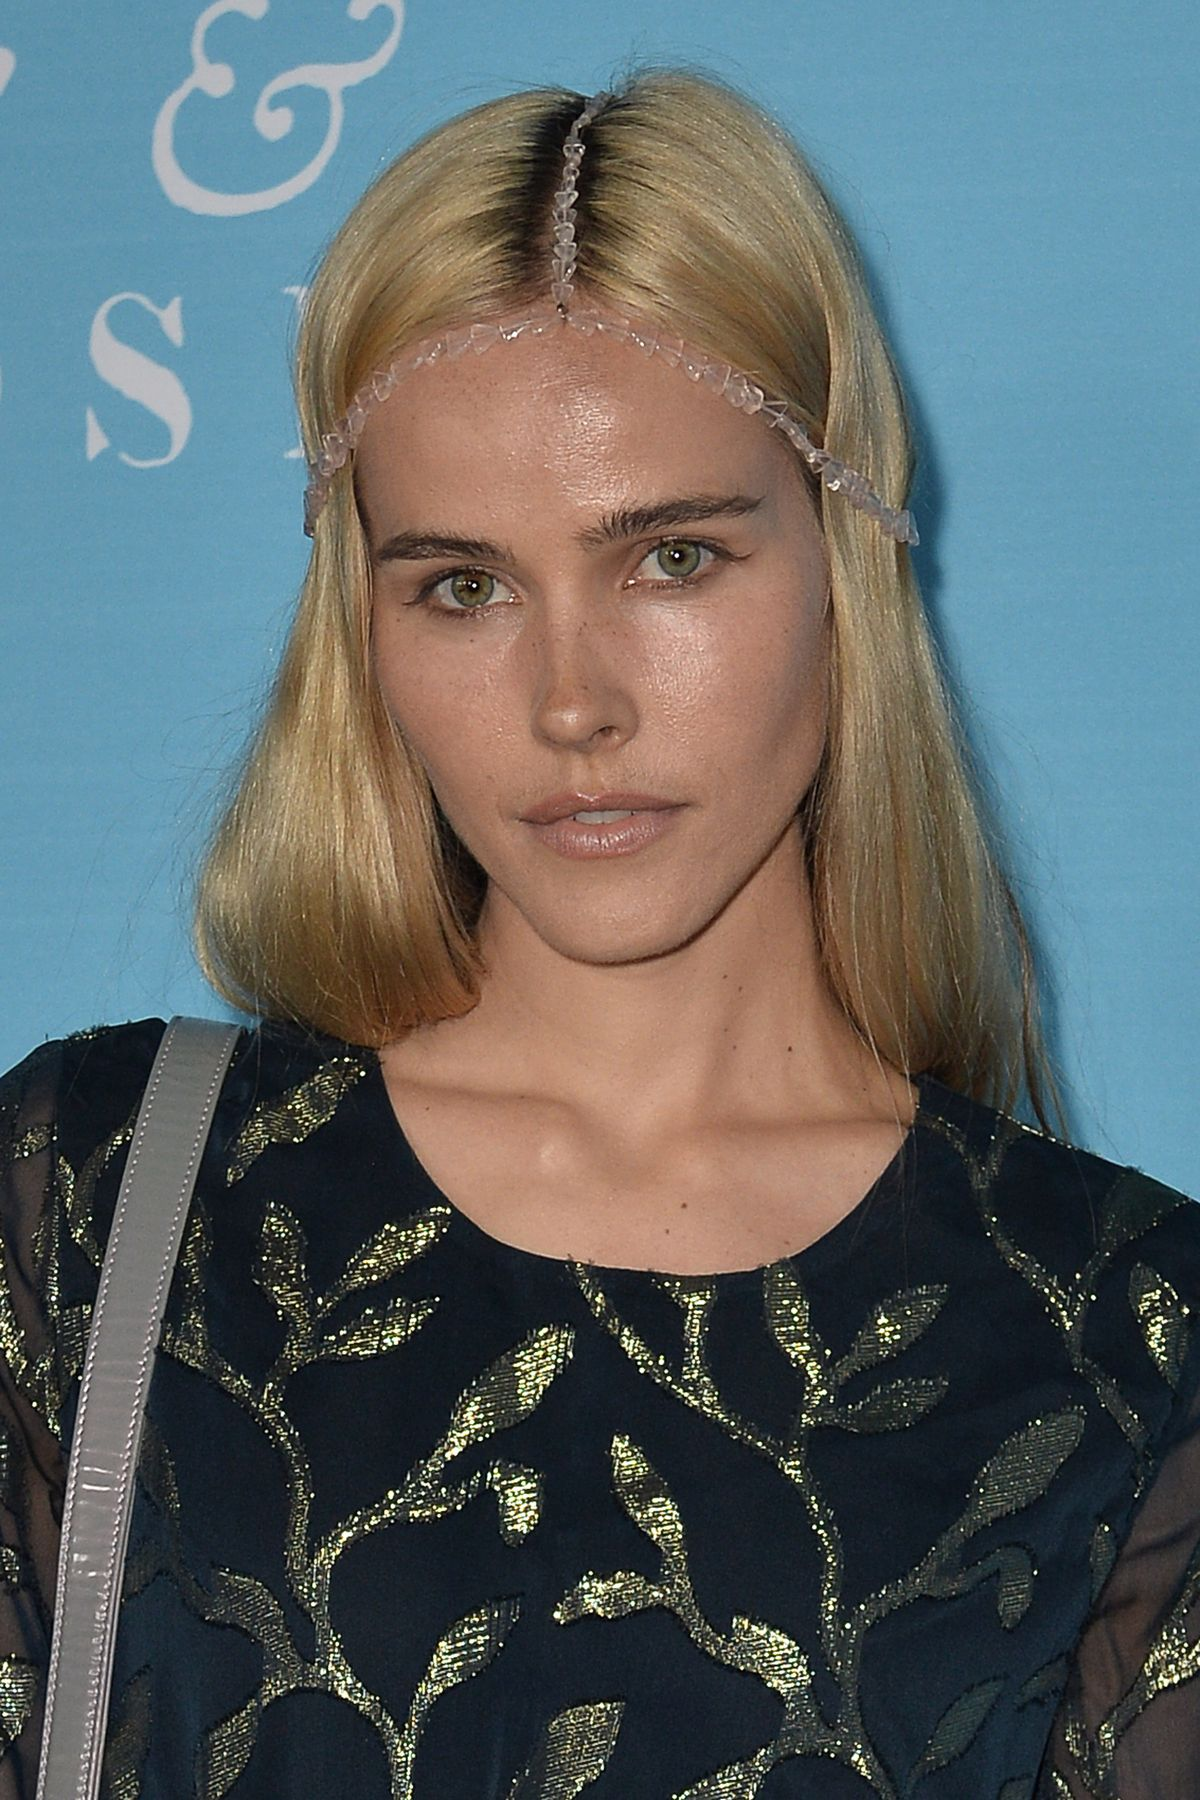 isabel lucas - photo #13